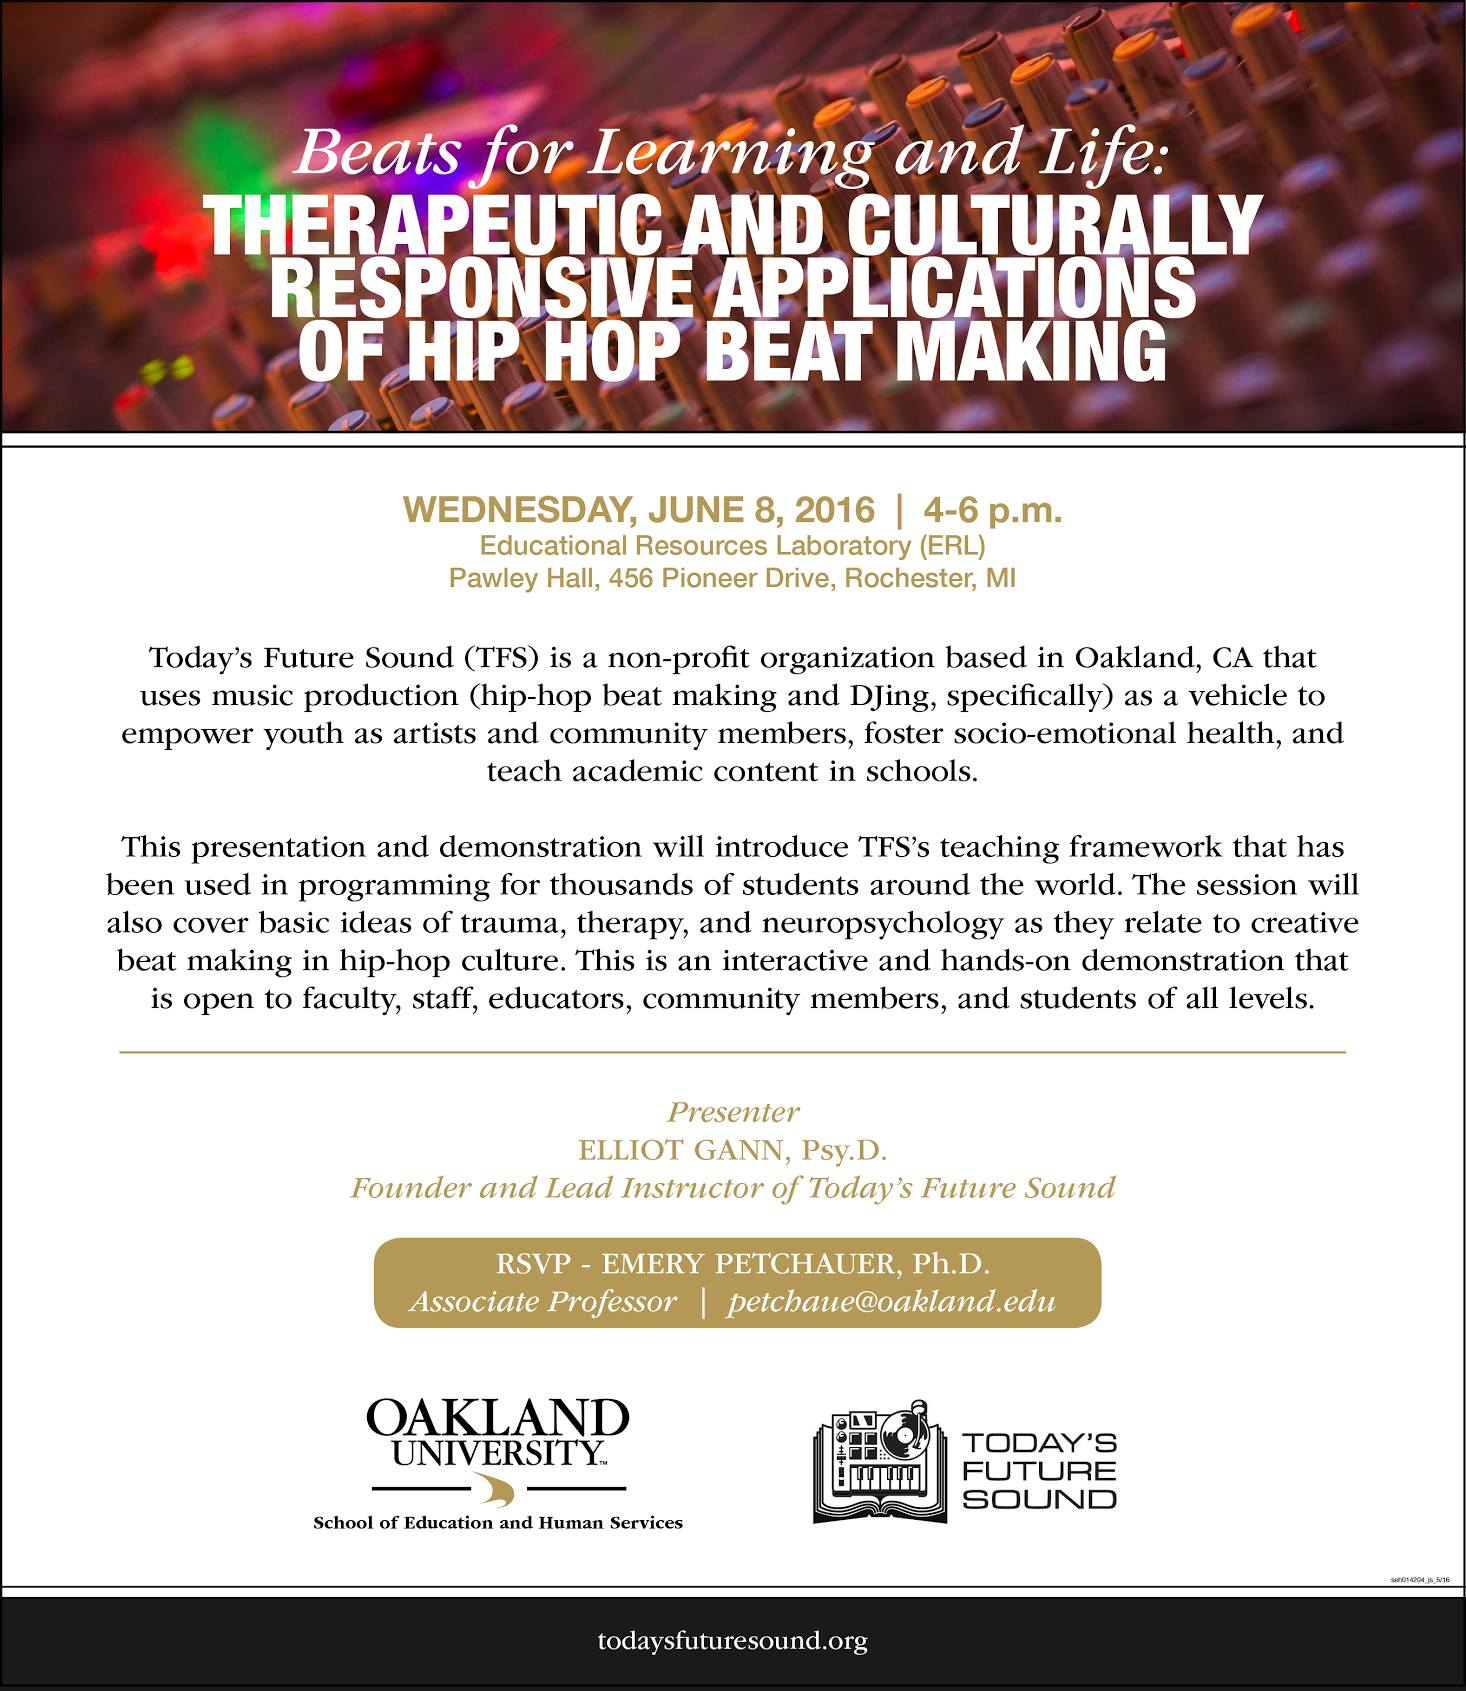 Beats for Learning and for Life - Therapeutic & Culturally Responsive Applications of Hip Hop Beat Making